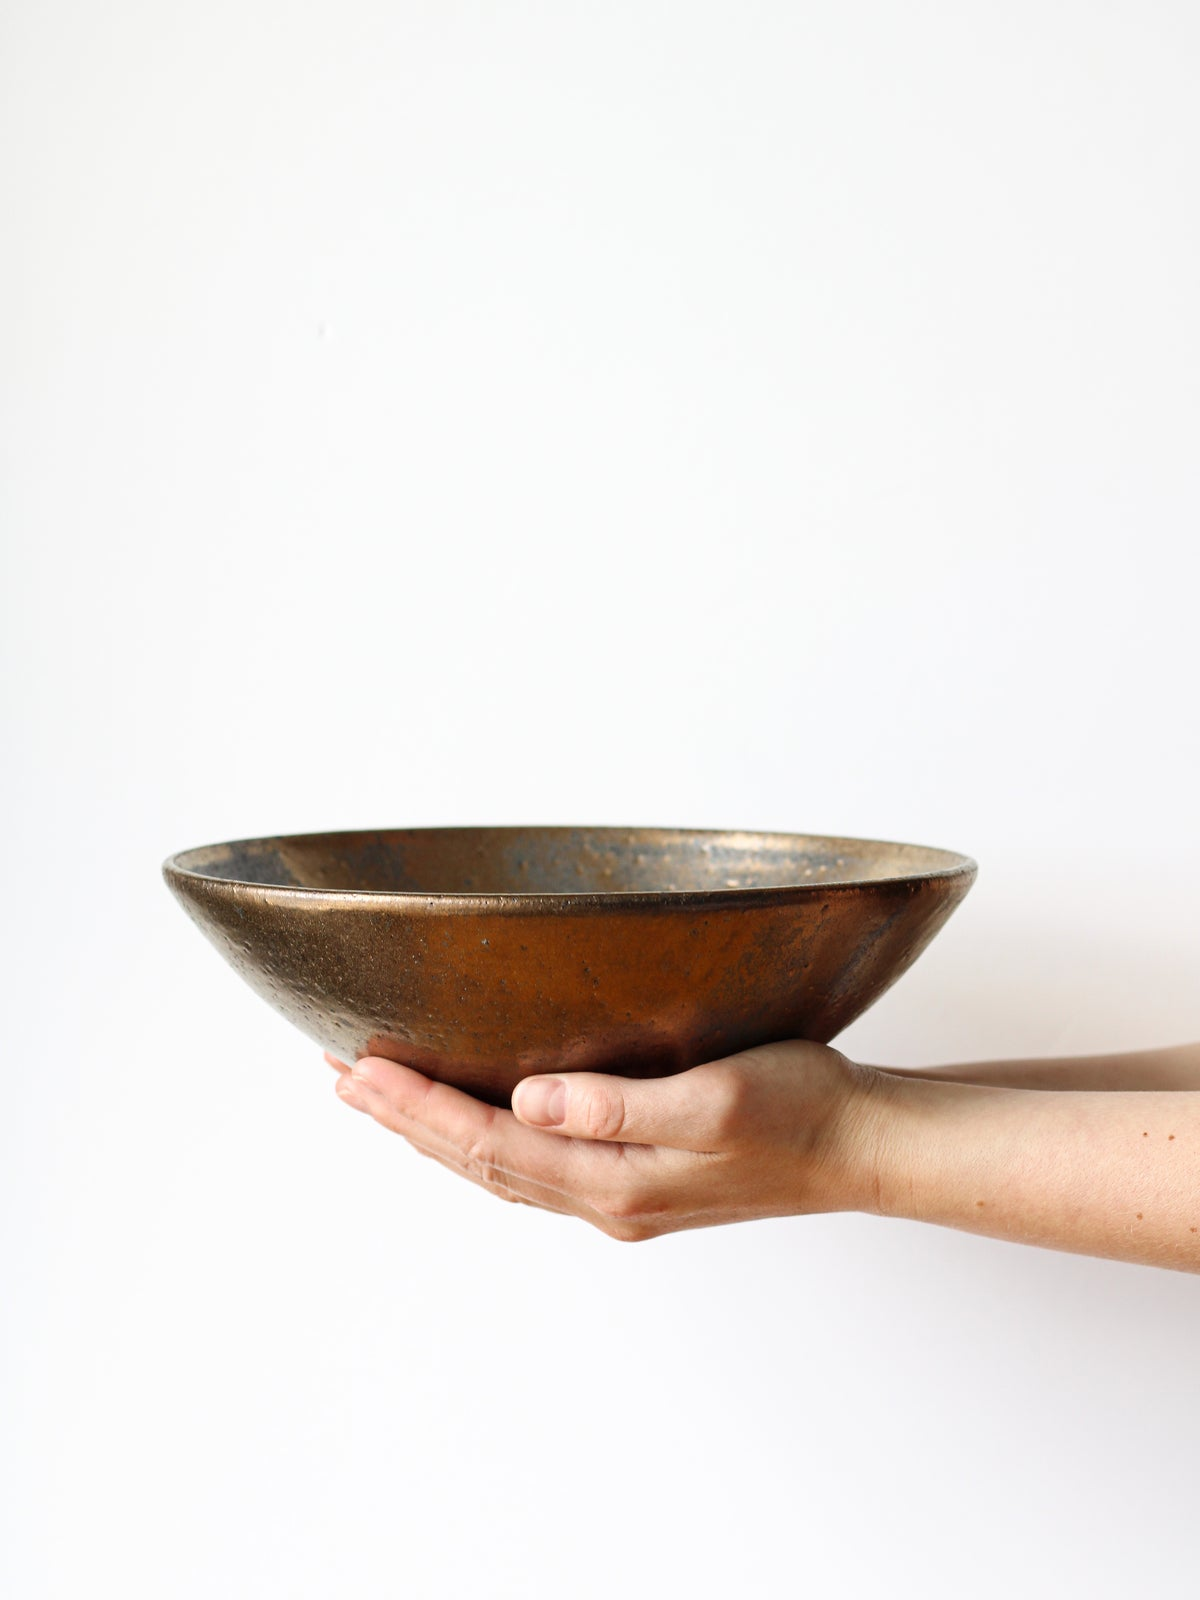 Image of shallow bowl in gold glaze